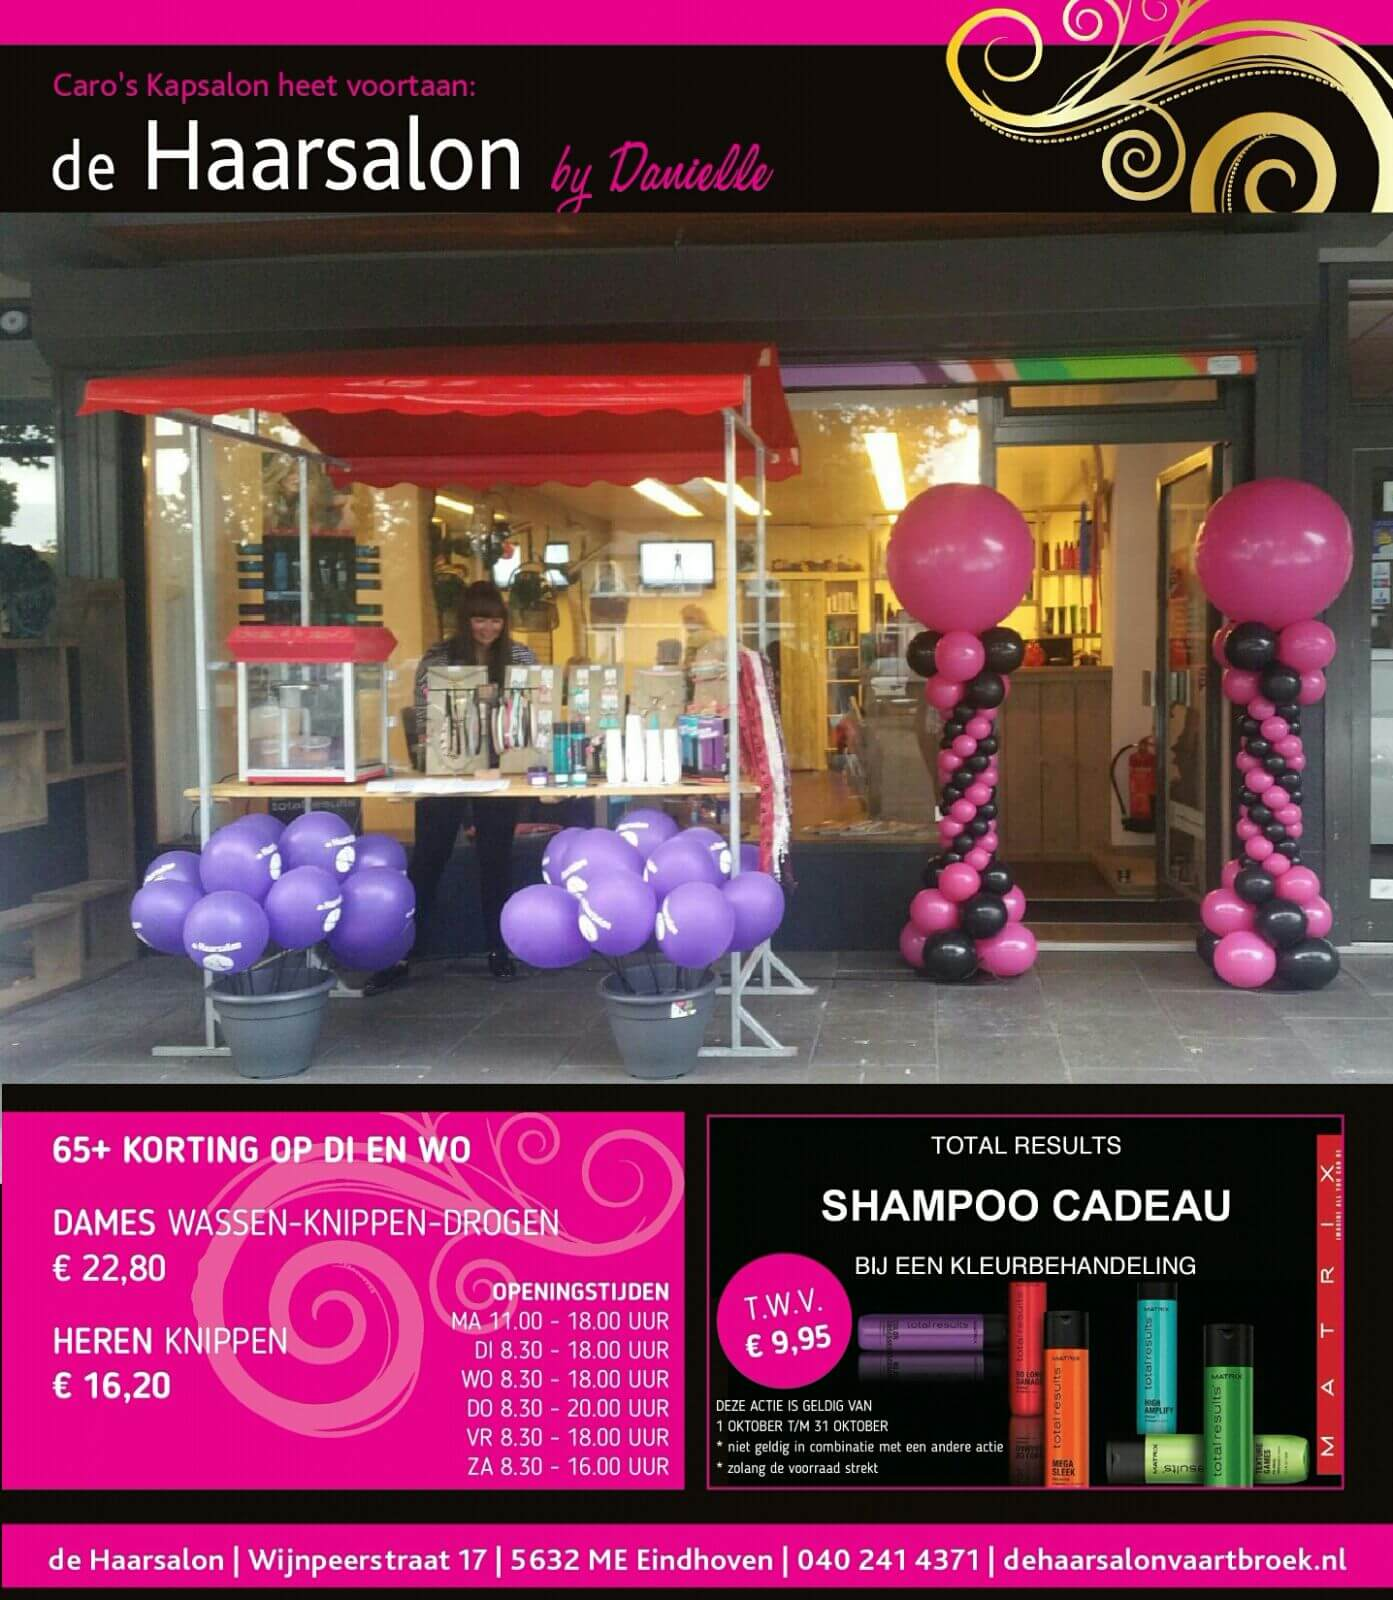 Haarsalon by Danielle